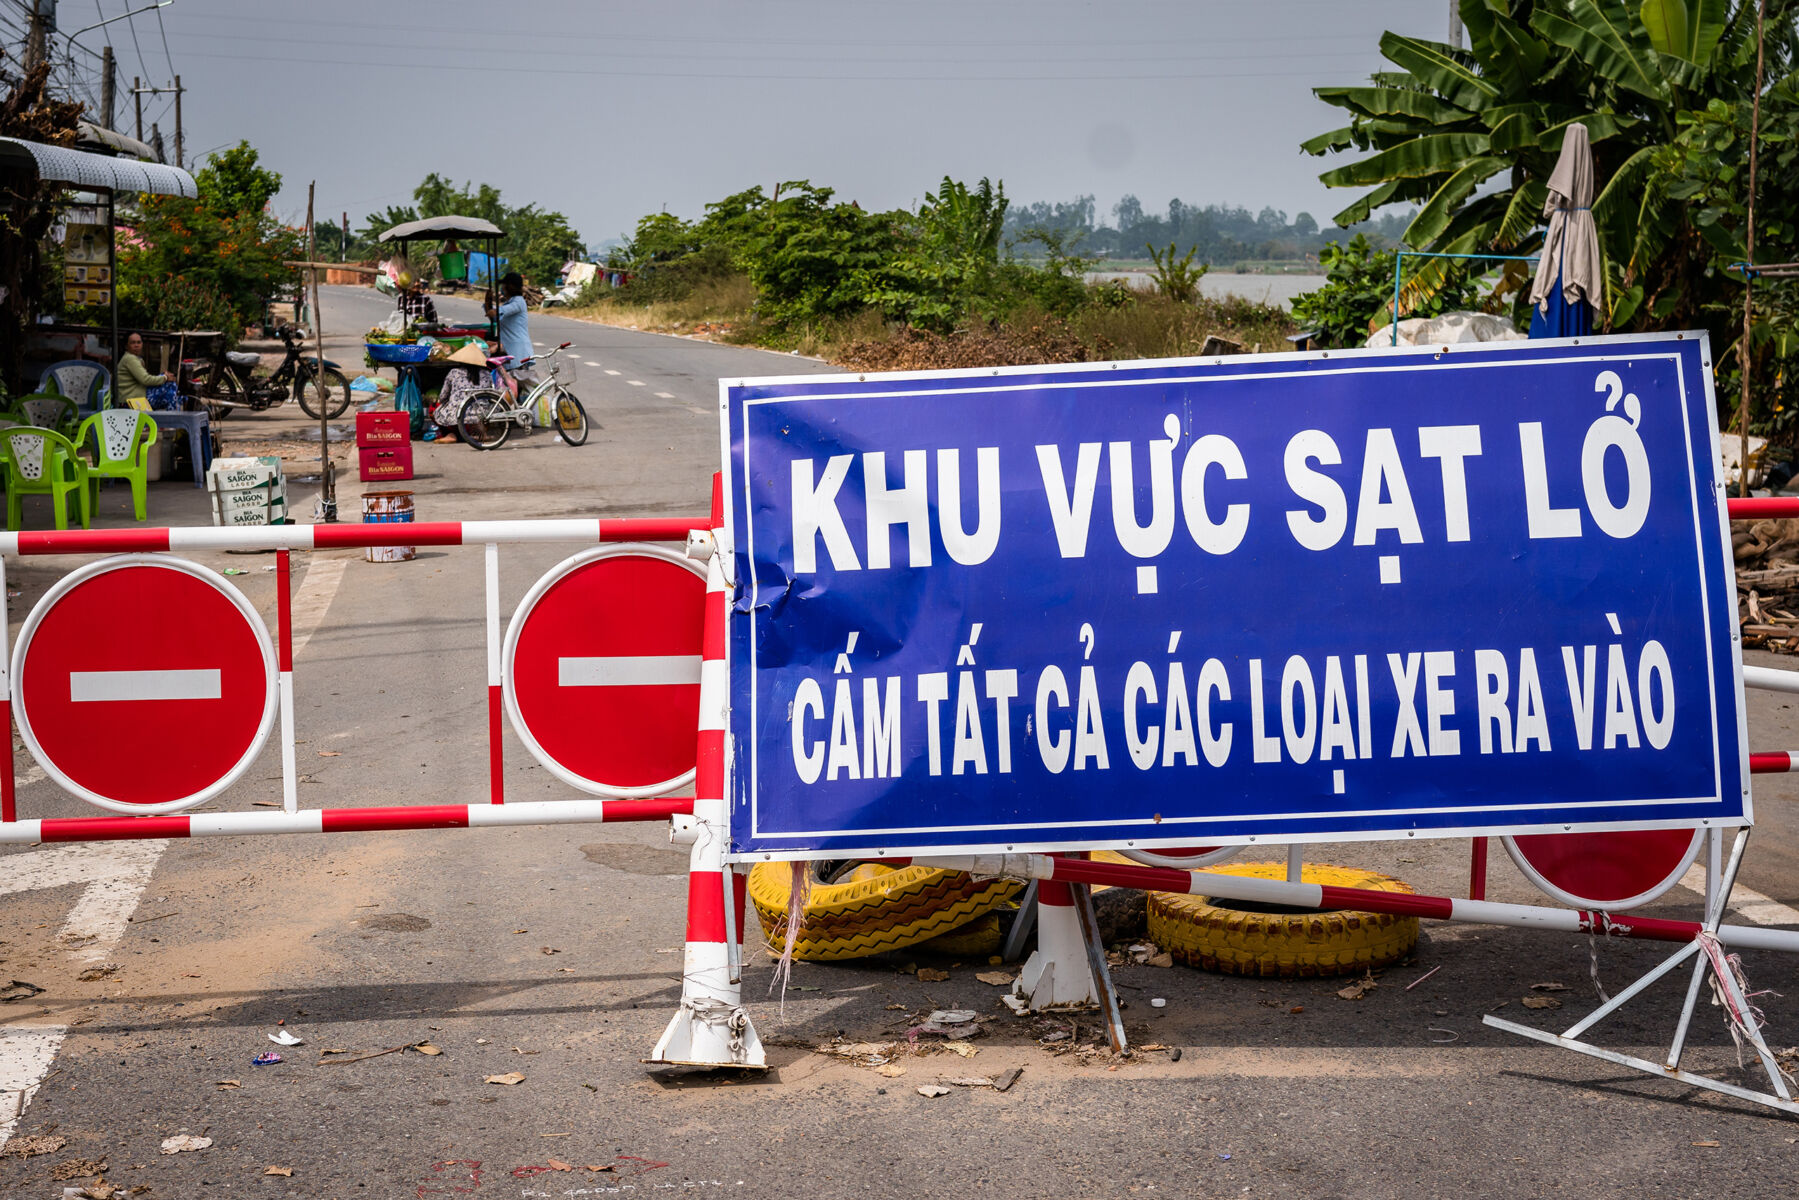 Homes and highways in Vietnam are being lost as Mekong delta washes away | News by Thaiger